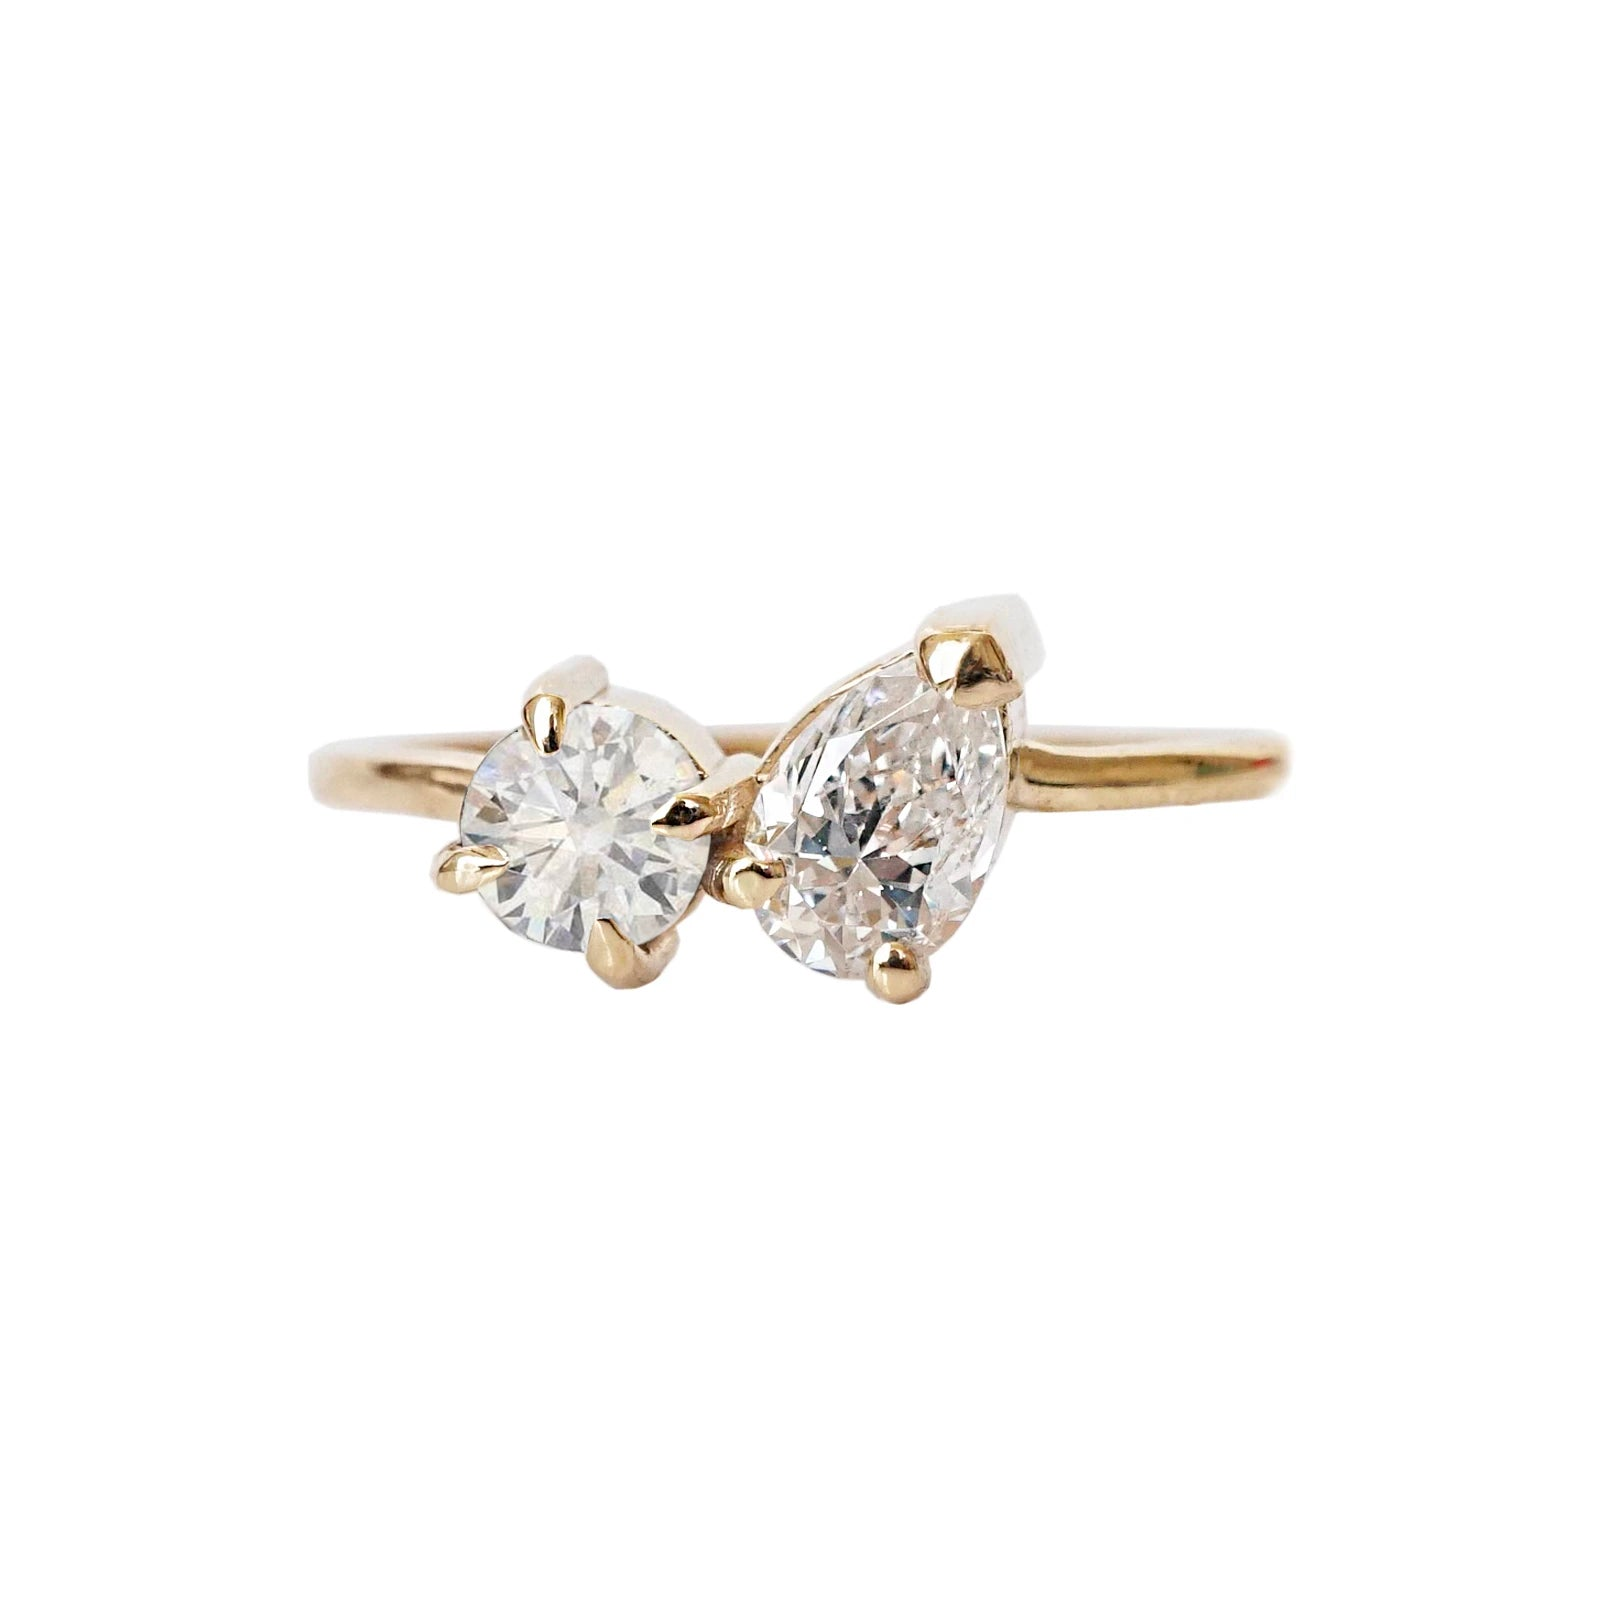 Toi et Moi Diamond Ring, 0.64ct